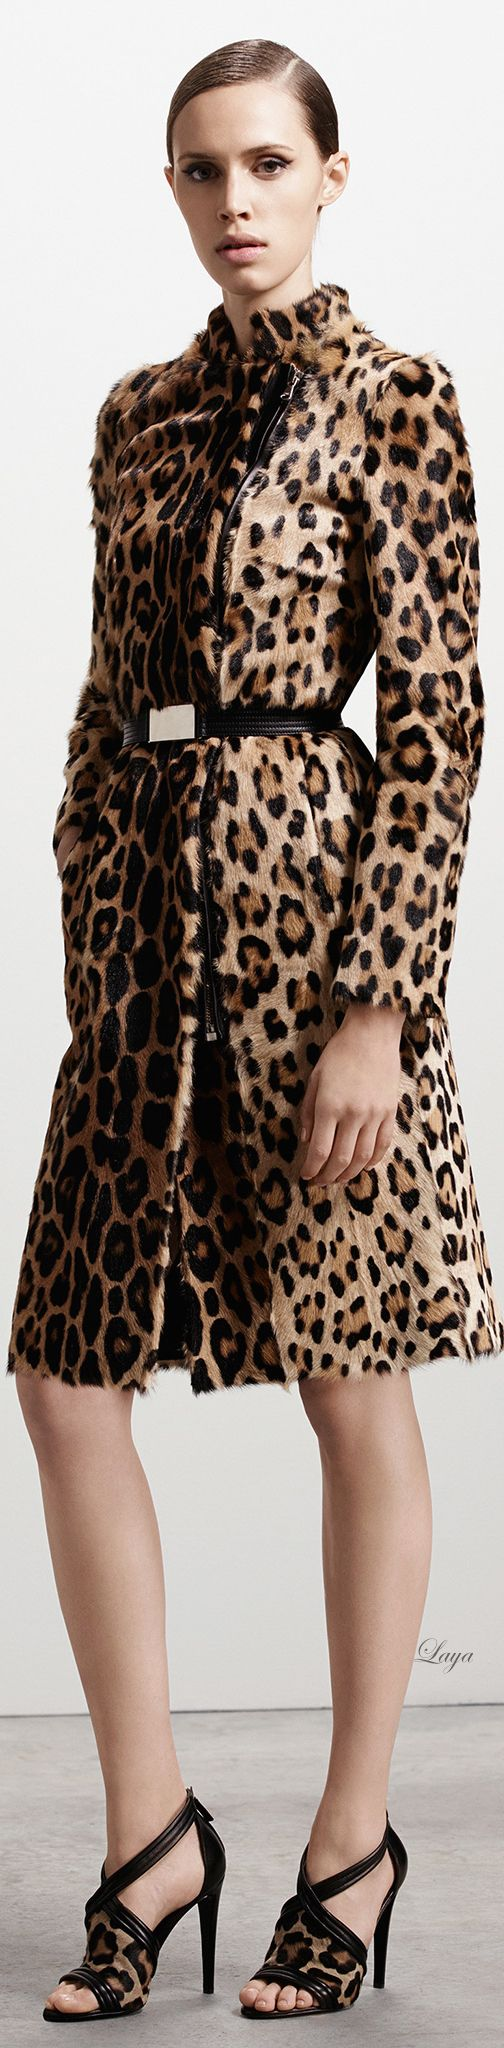 Altuzarra Pre-Fall 2015 | The House of Beccaria#